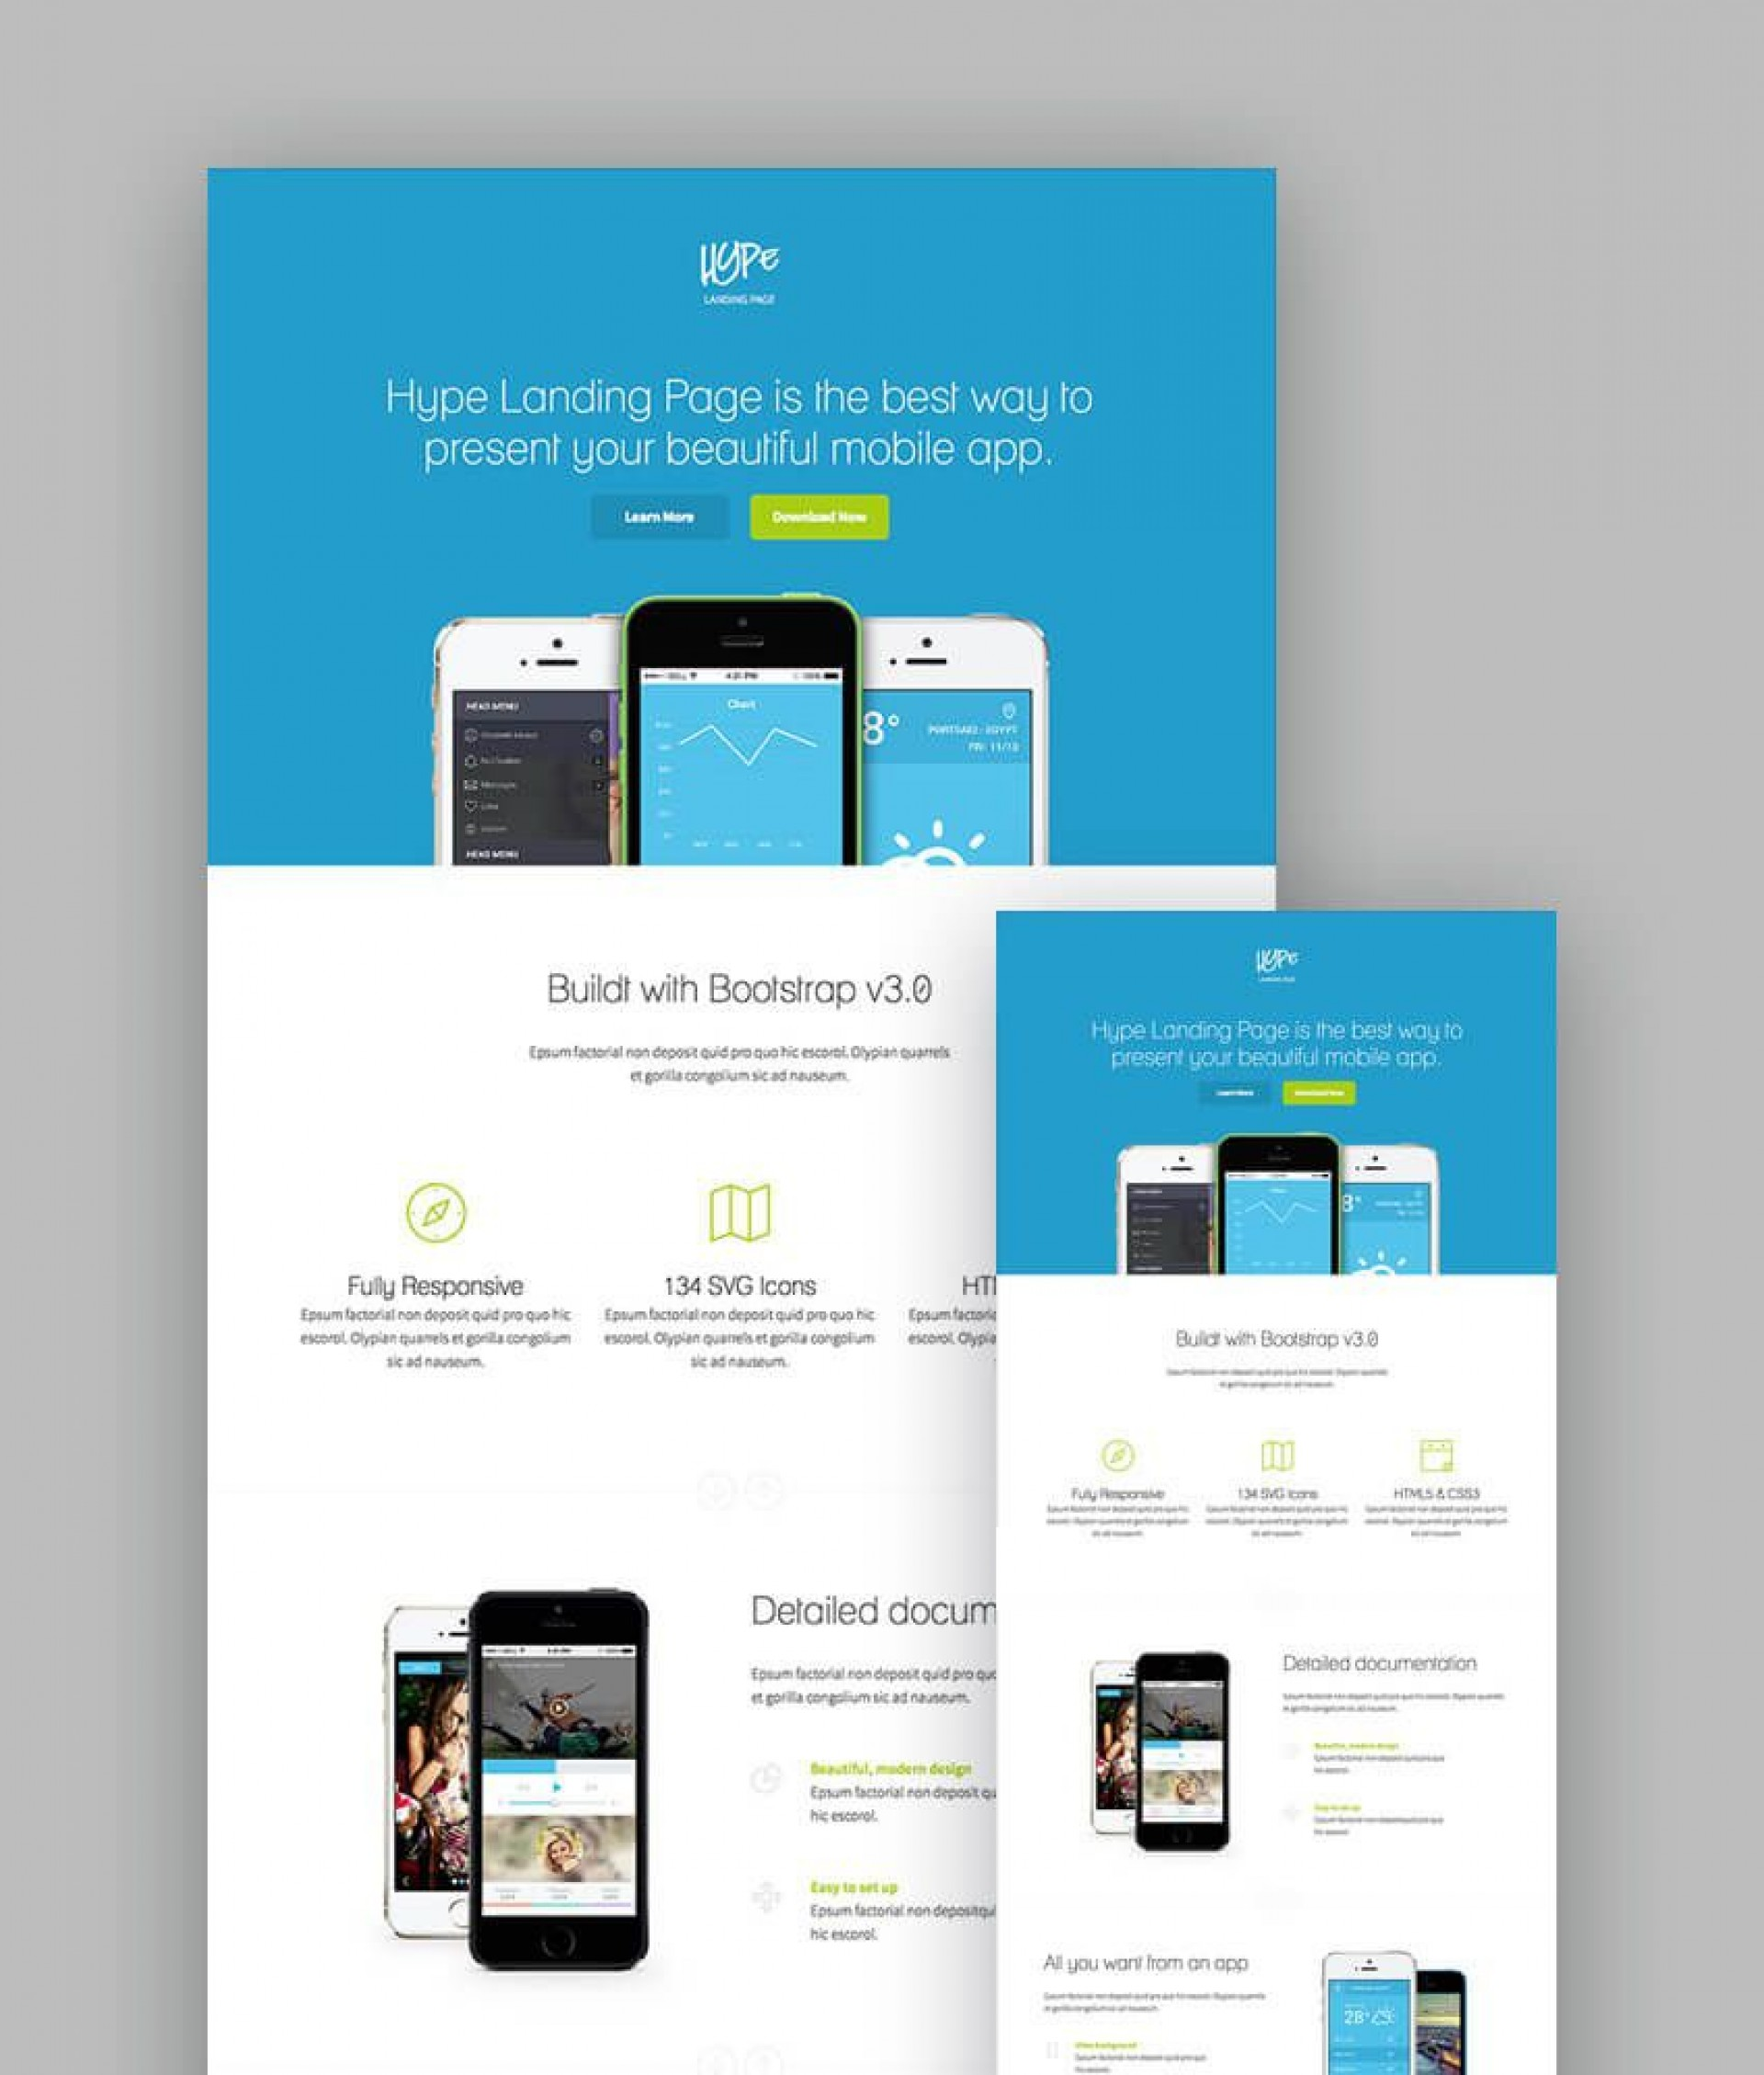 003 Stunning Responsive Landing Page Template High Definition  Templates Html5 Free Download Wordpres Html1920